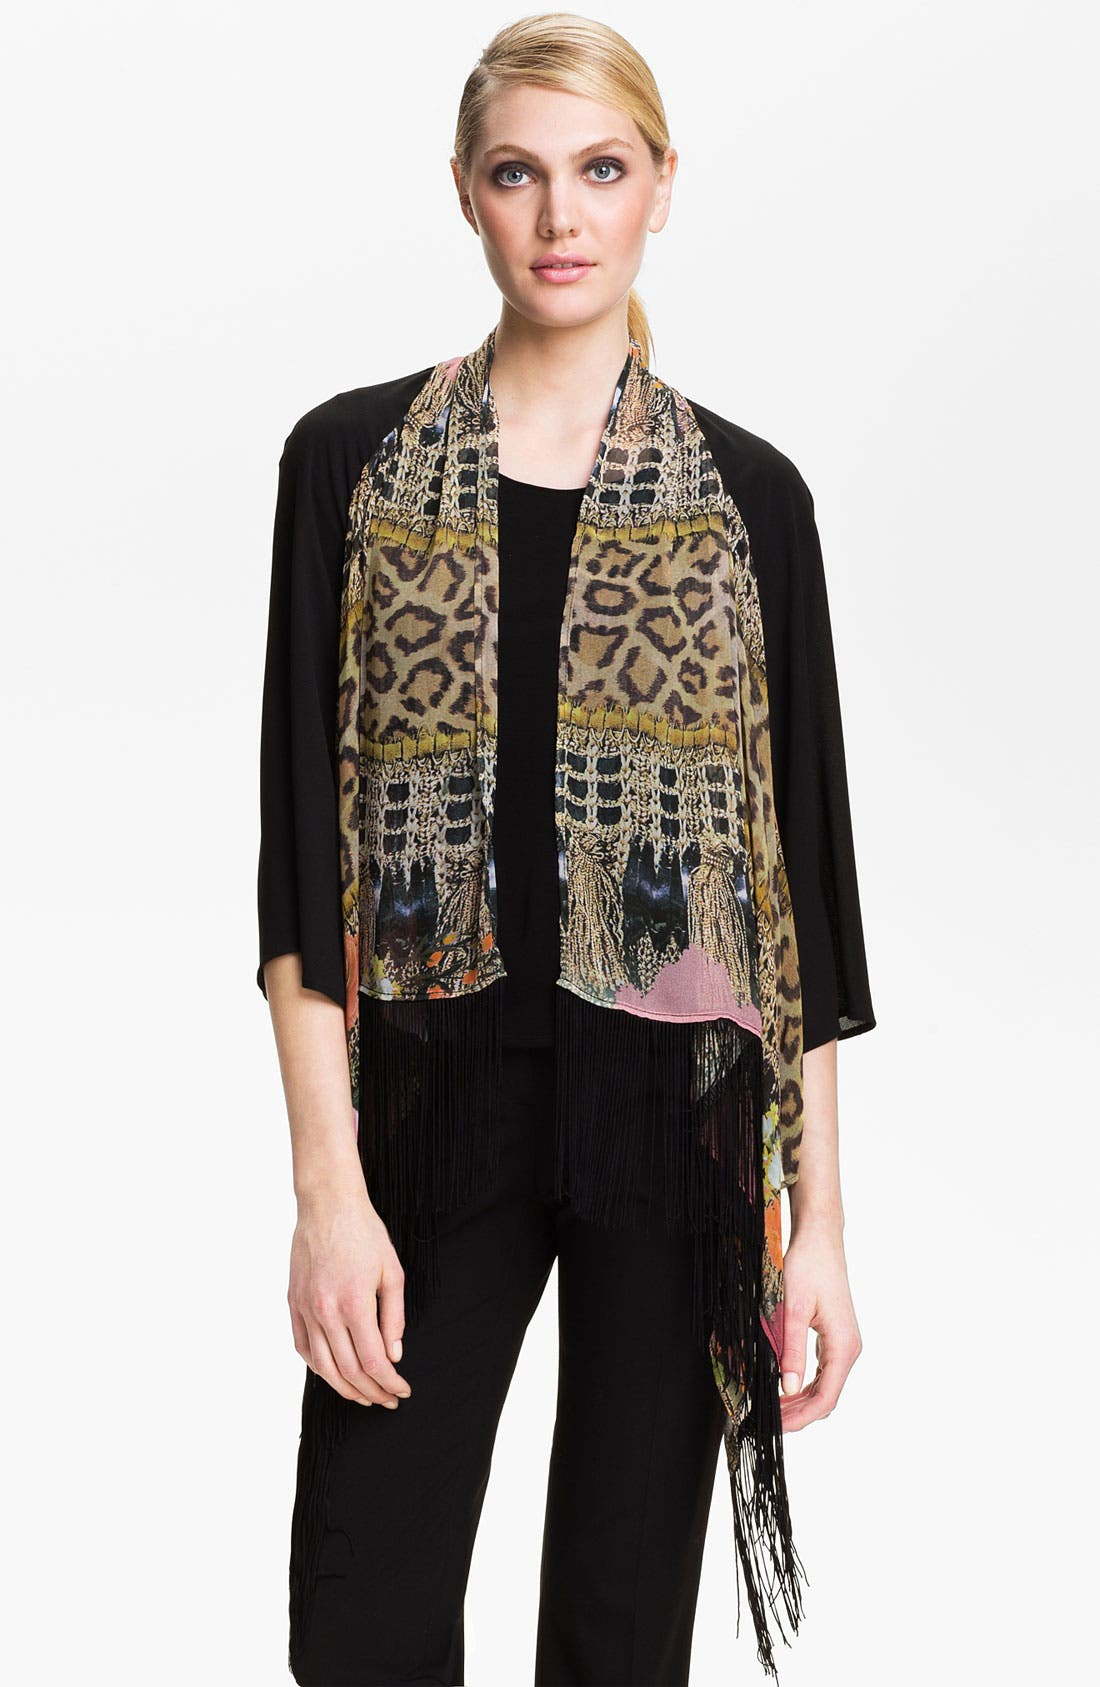 Alternate Image 1 Selected - Alberto Makali Tassel Print Fringed Jacket